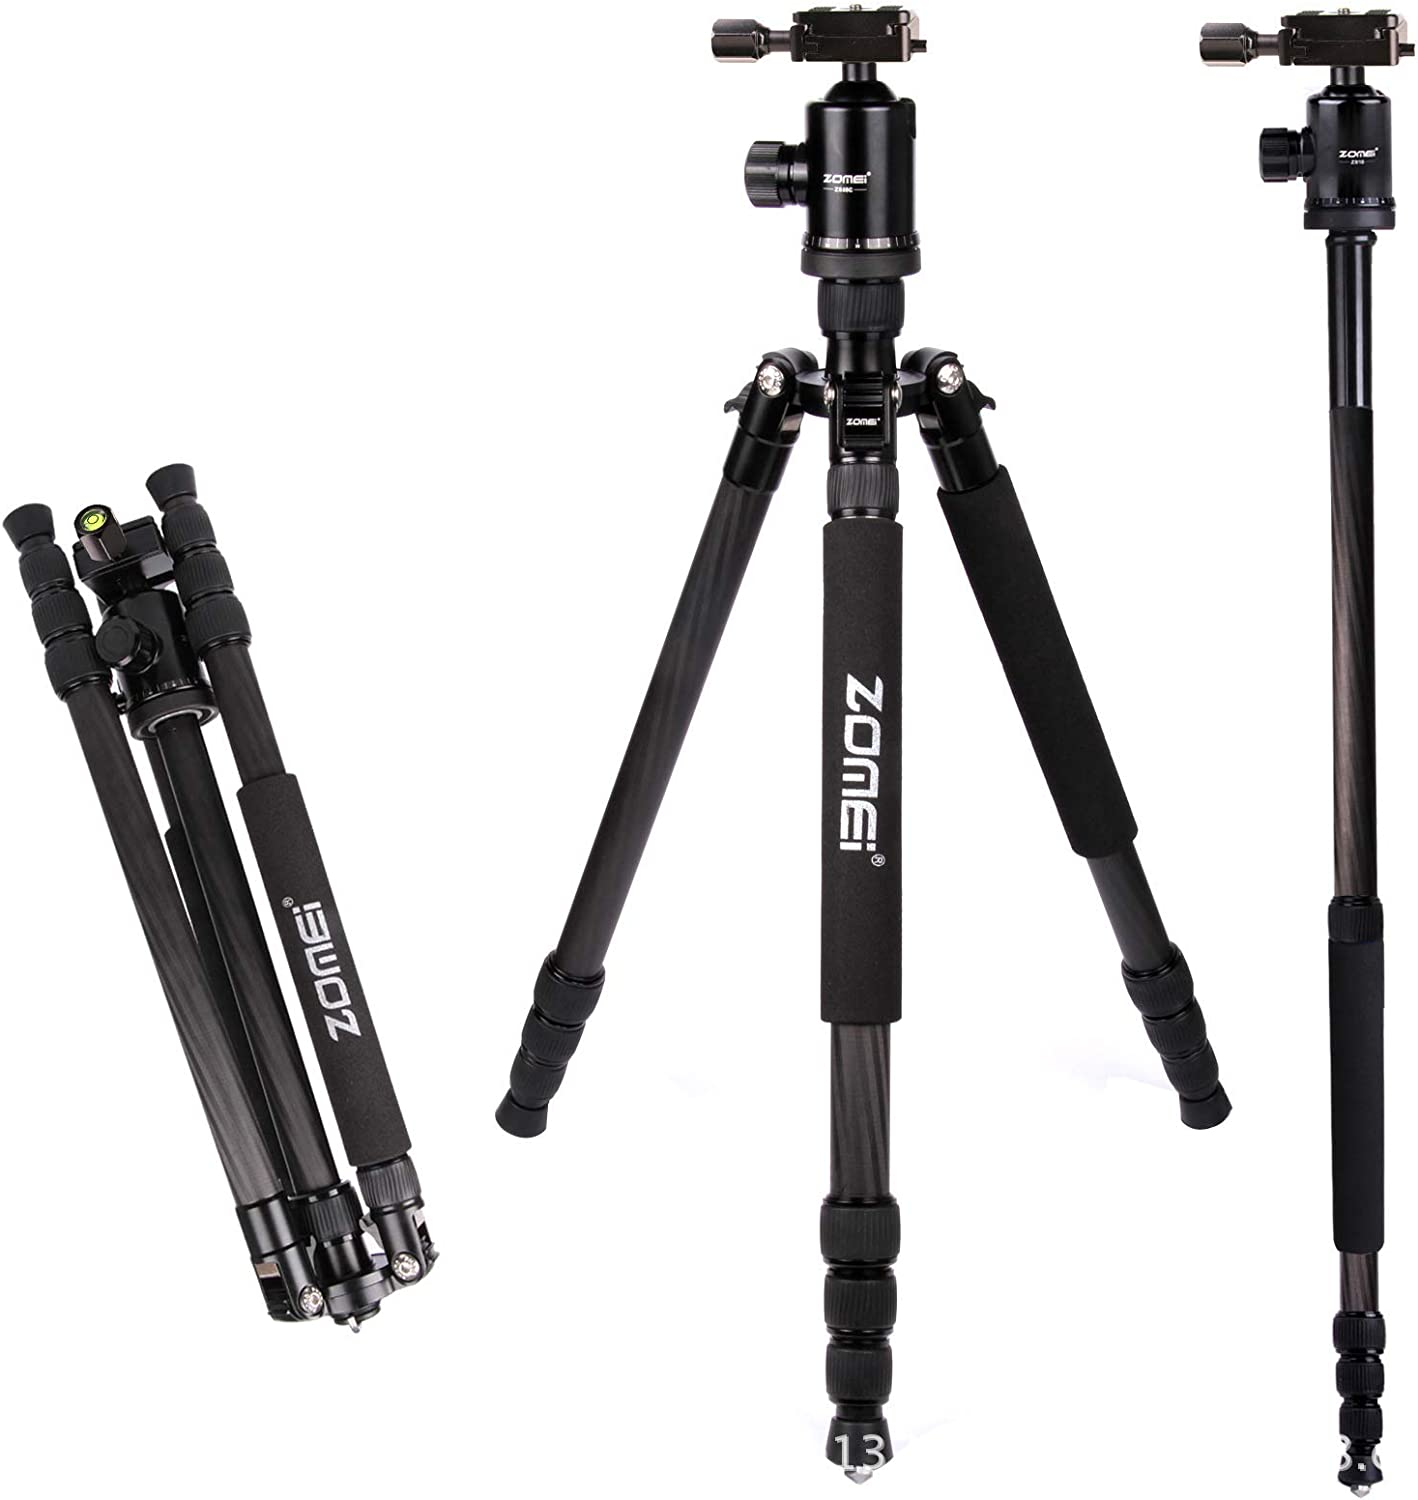 68 Carbon Fiber Camera Tripod Monopod with 360 Degree Ball Head,1//4 inch Quick Shoe Plate,Bag for DSLR Camera,Professional Tripod,Load up to 26 pounds,Silver